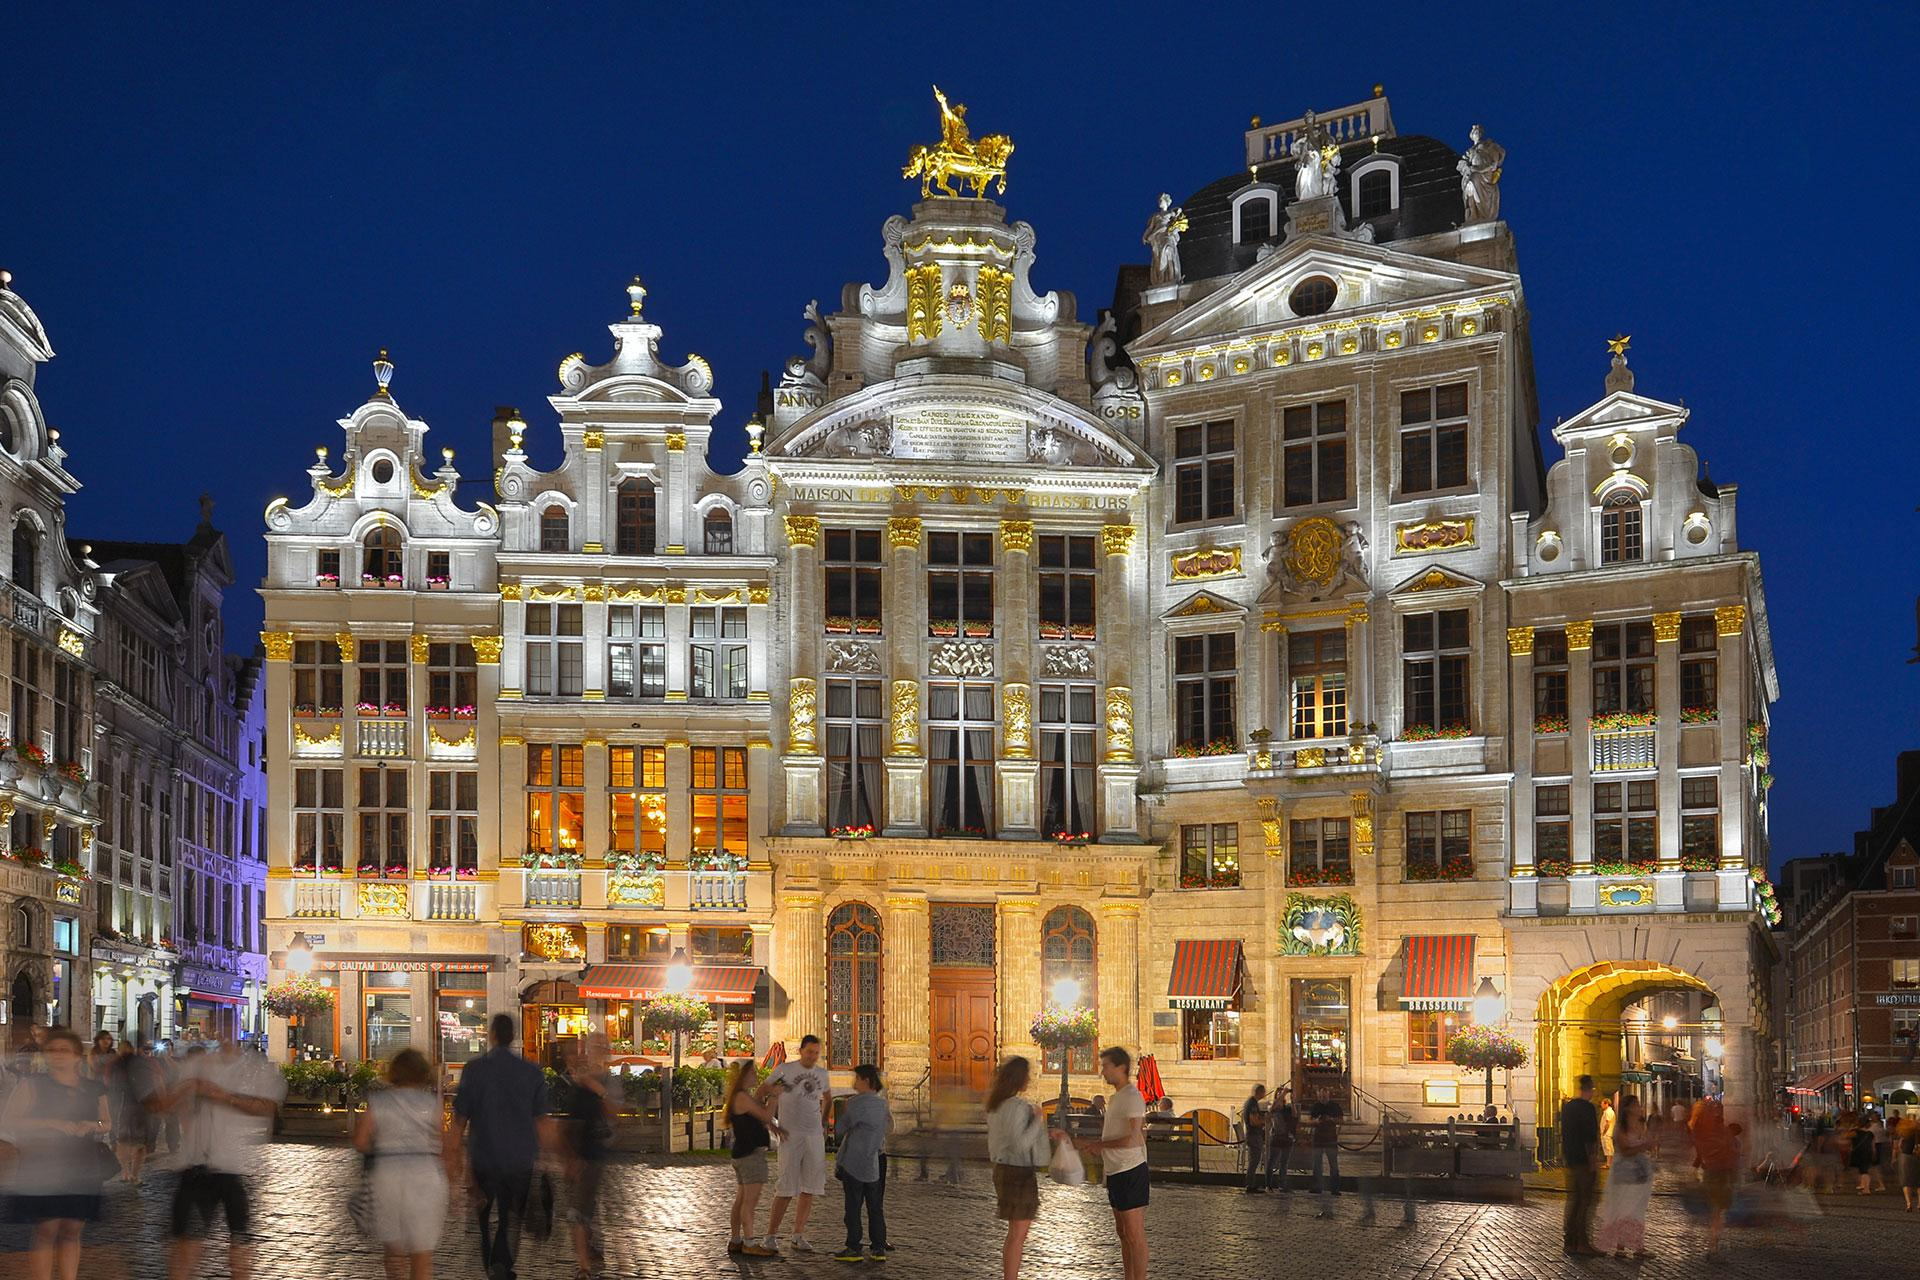 LED lighting scheme provides a gentle and precise white light to accentuate the architectural details of all the buildings on Grand Place, Brussels